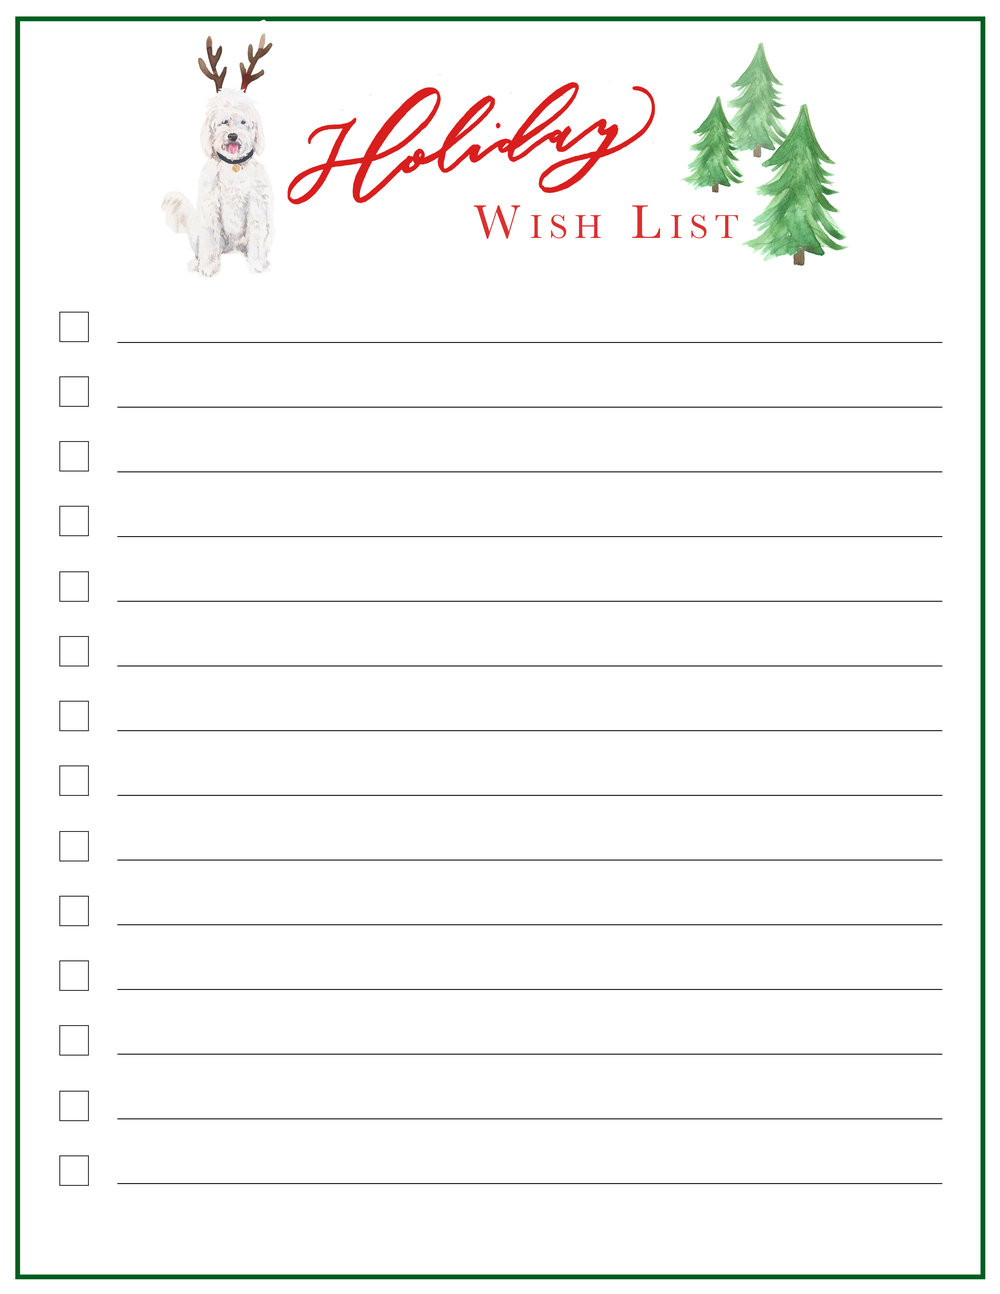 Holiday List.jpg